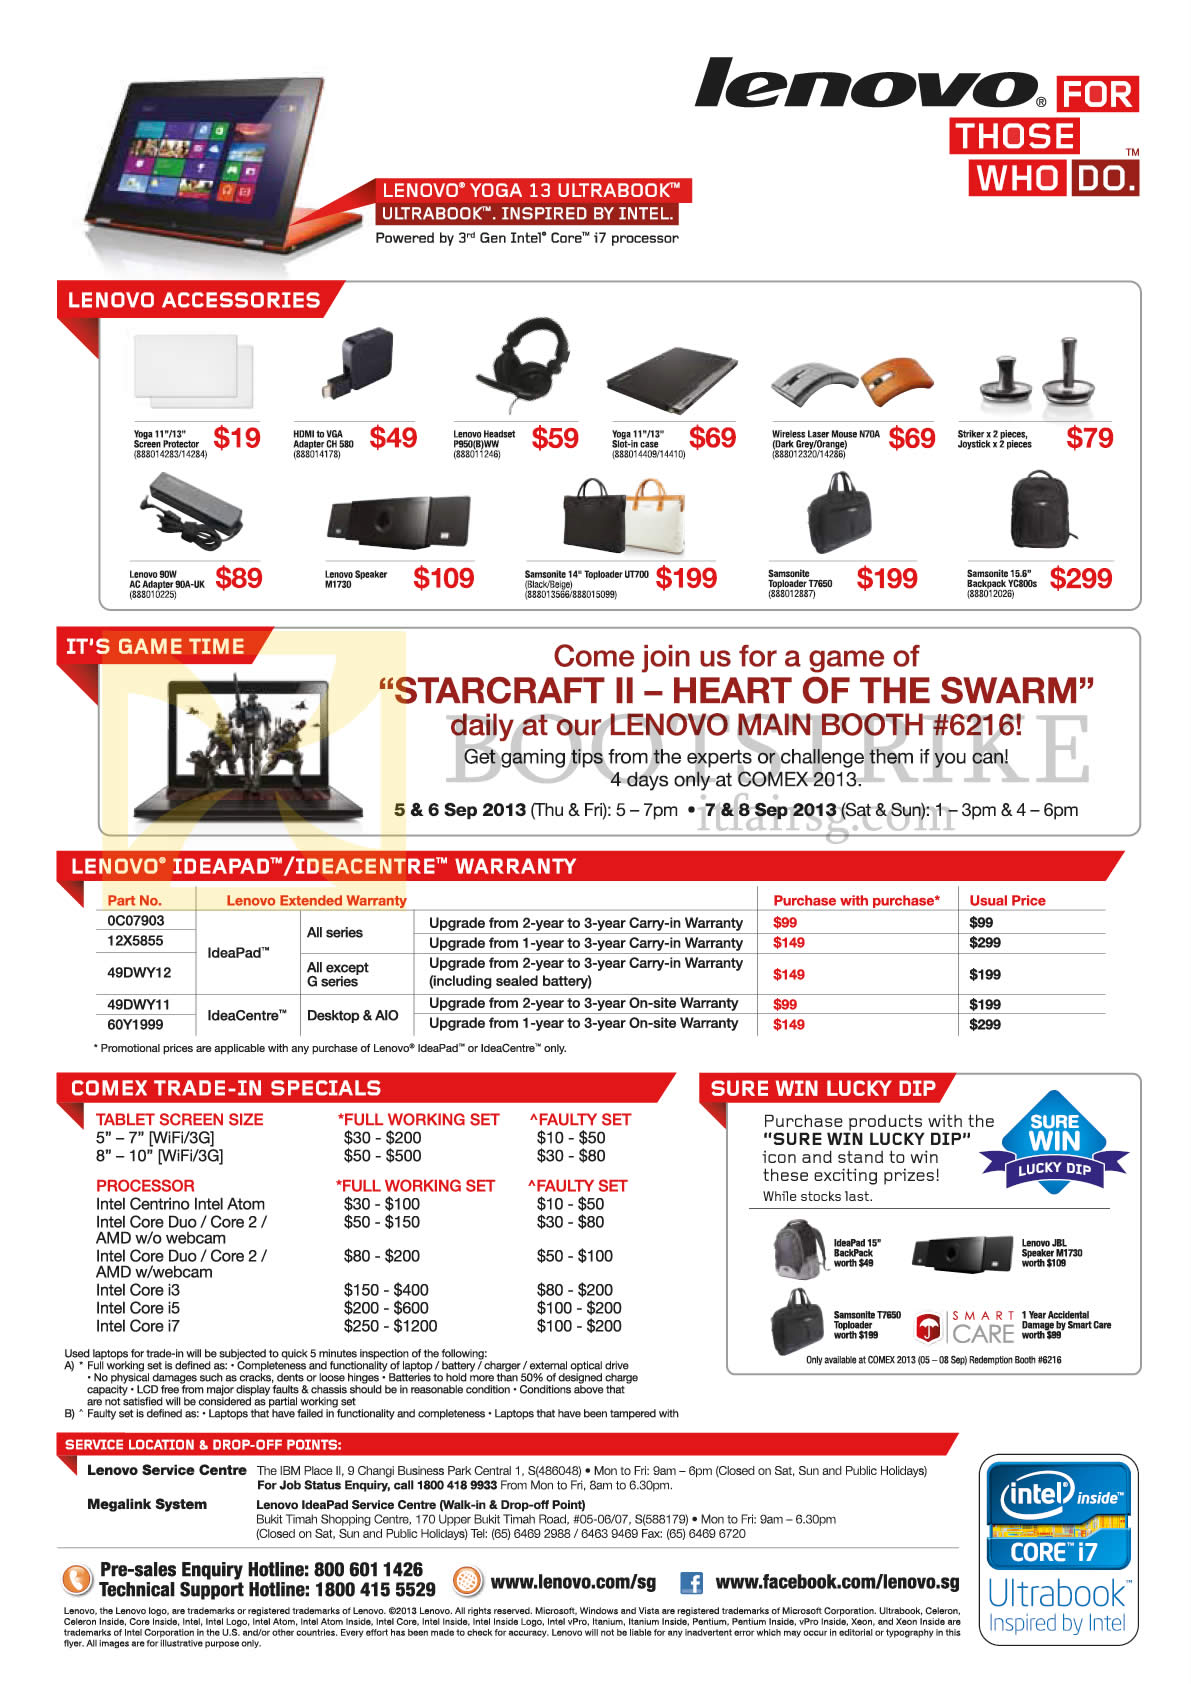 COMEX 2013 price list image brochure of Lenovo Accessories, Mouse, Speakers, Bags, Starcraft II, Warranty, Trade-In